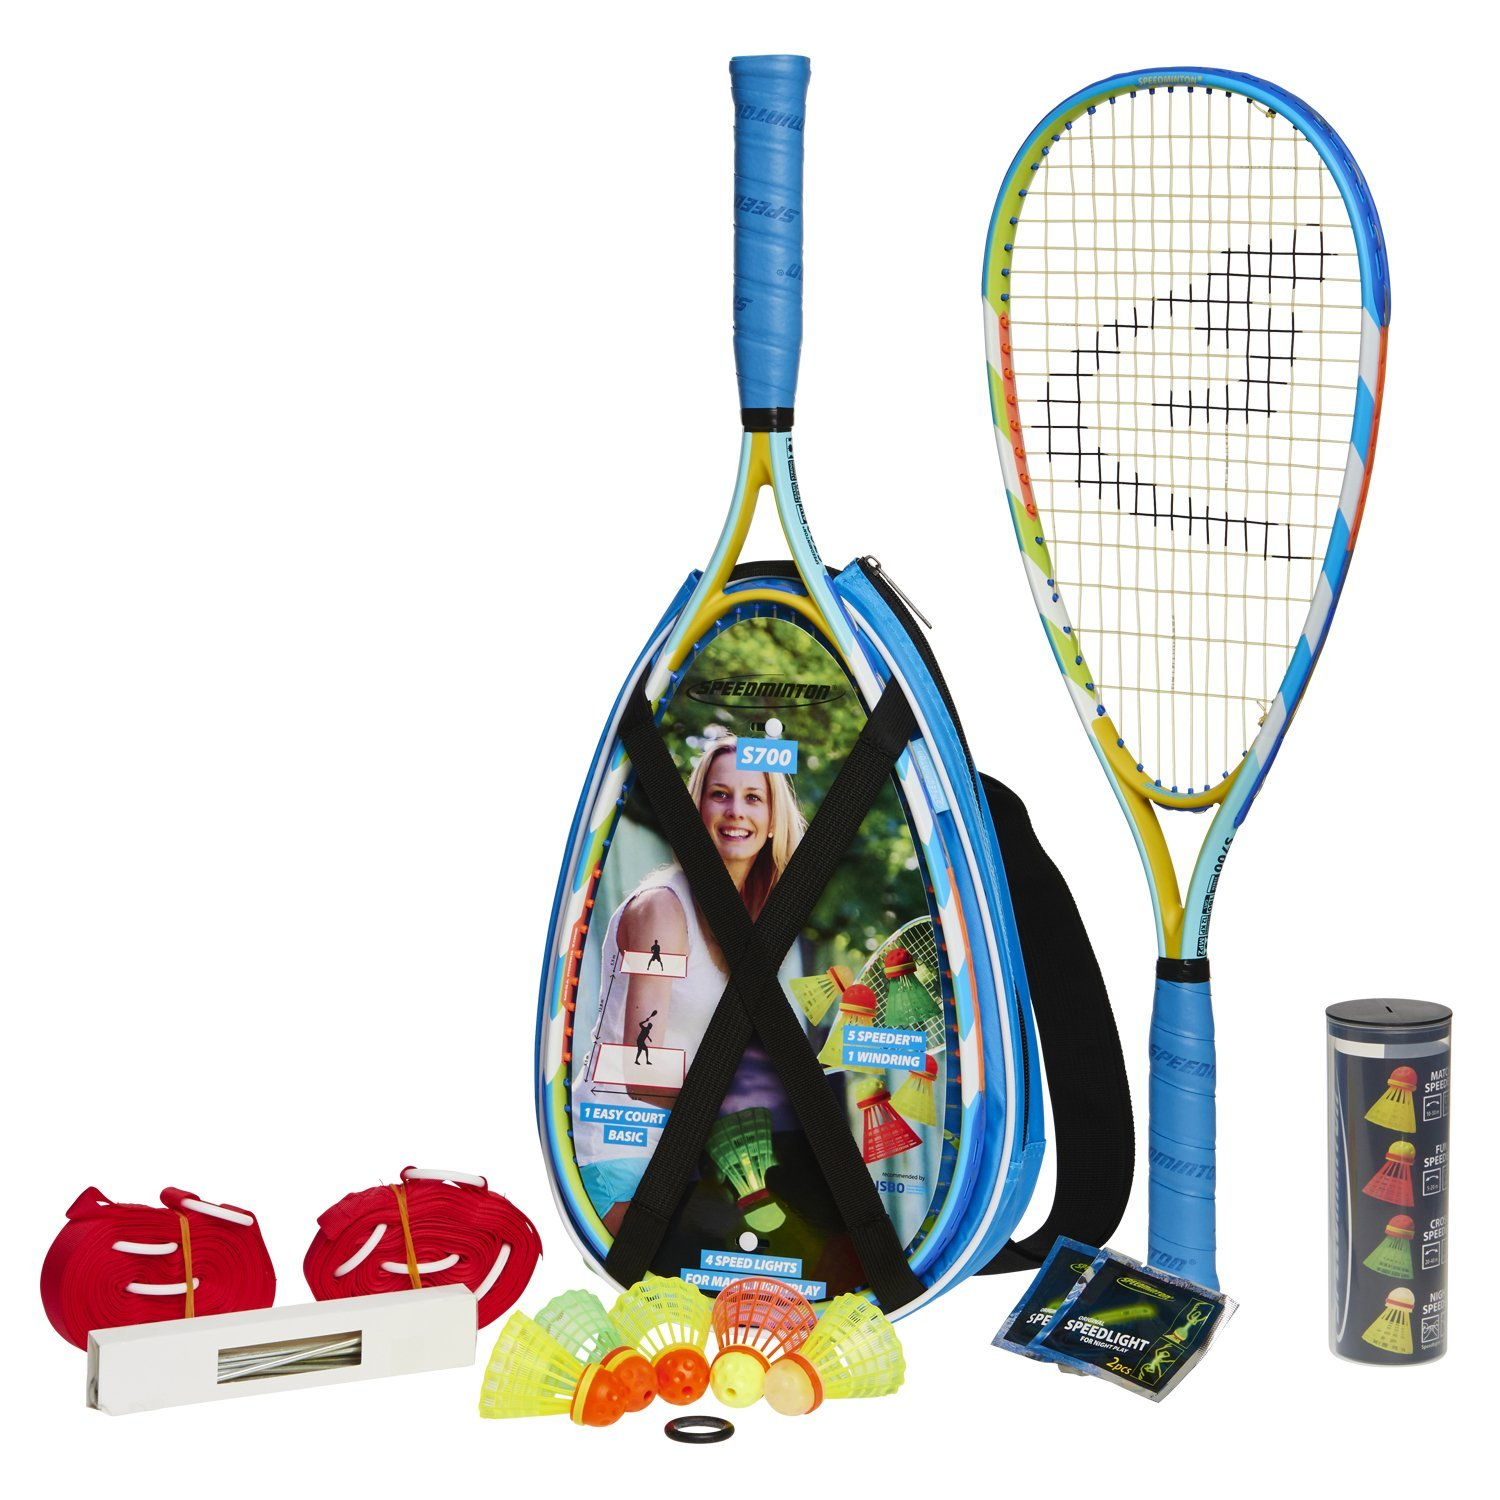 Speedminton S700 Set - Original speed ​​badminton / crossminton all-round set that includes 2 rackets, 5 Speeder tube, Easy Court, bag